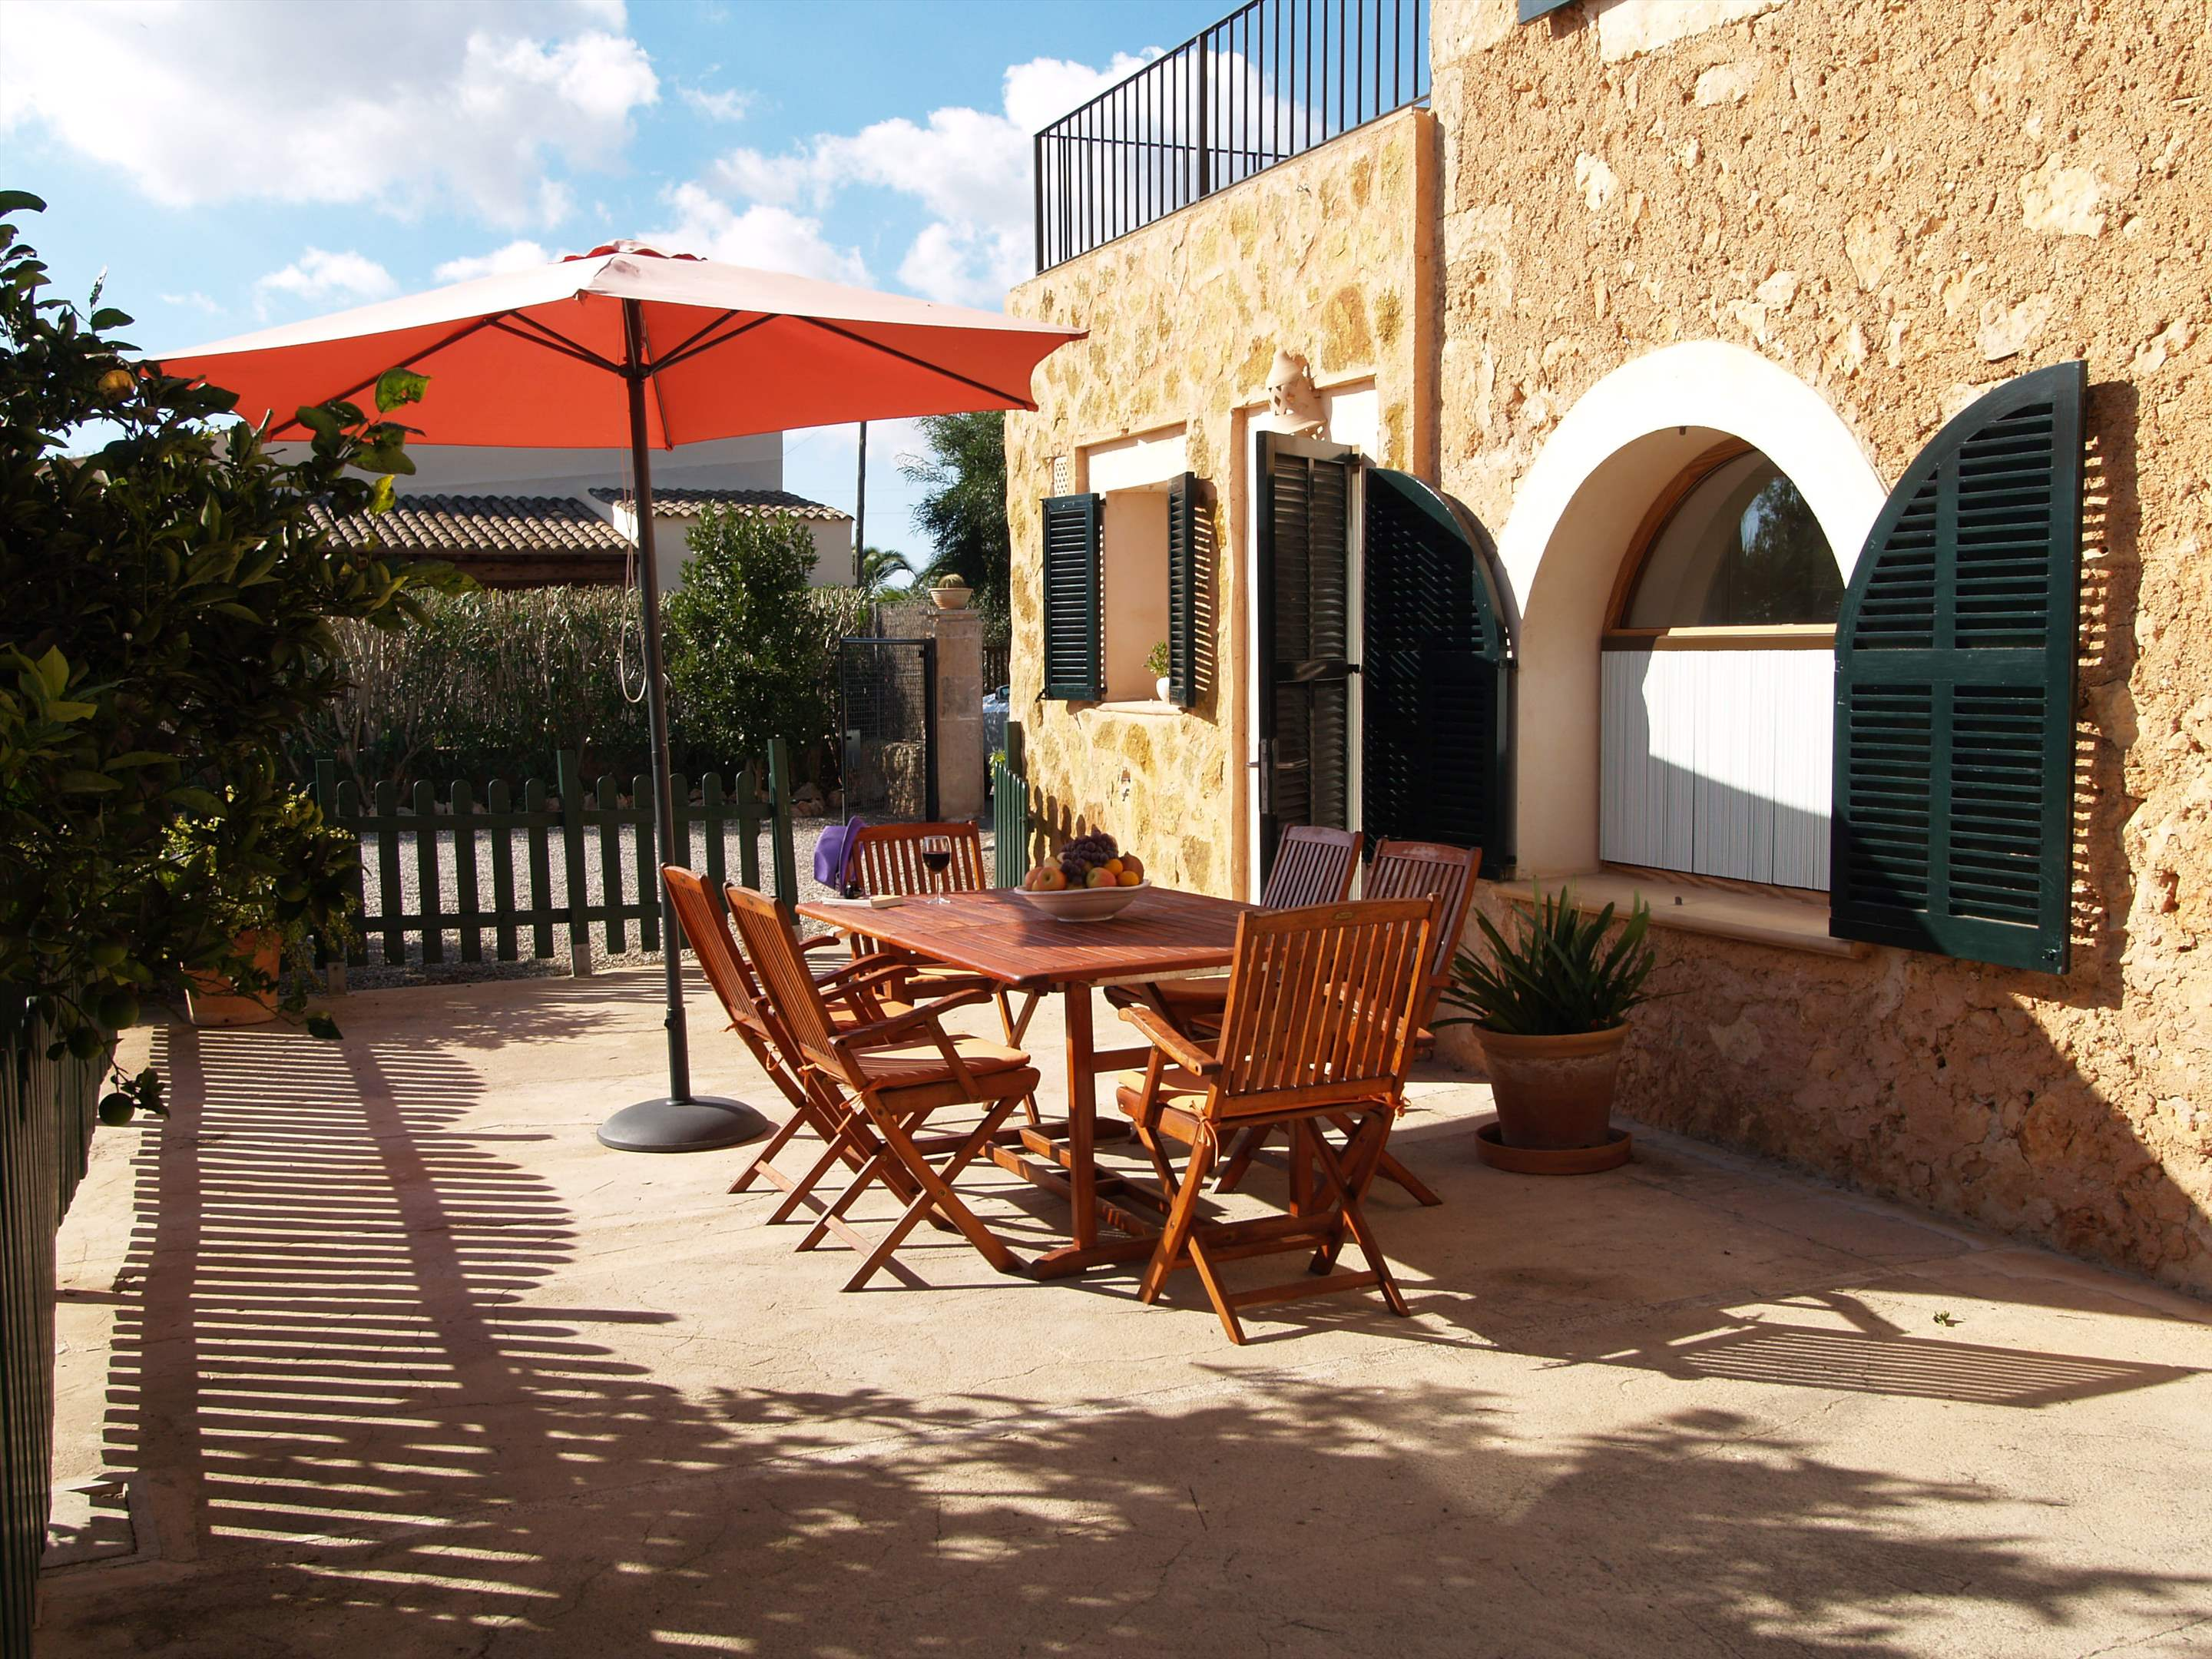 Son Rengo, 3 bedroom villa in Campos & Sa Rapita , Majorca Photo #8